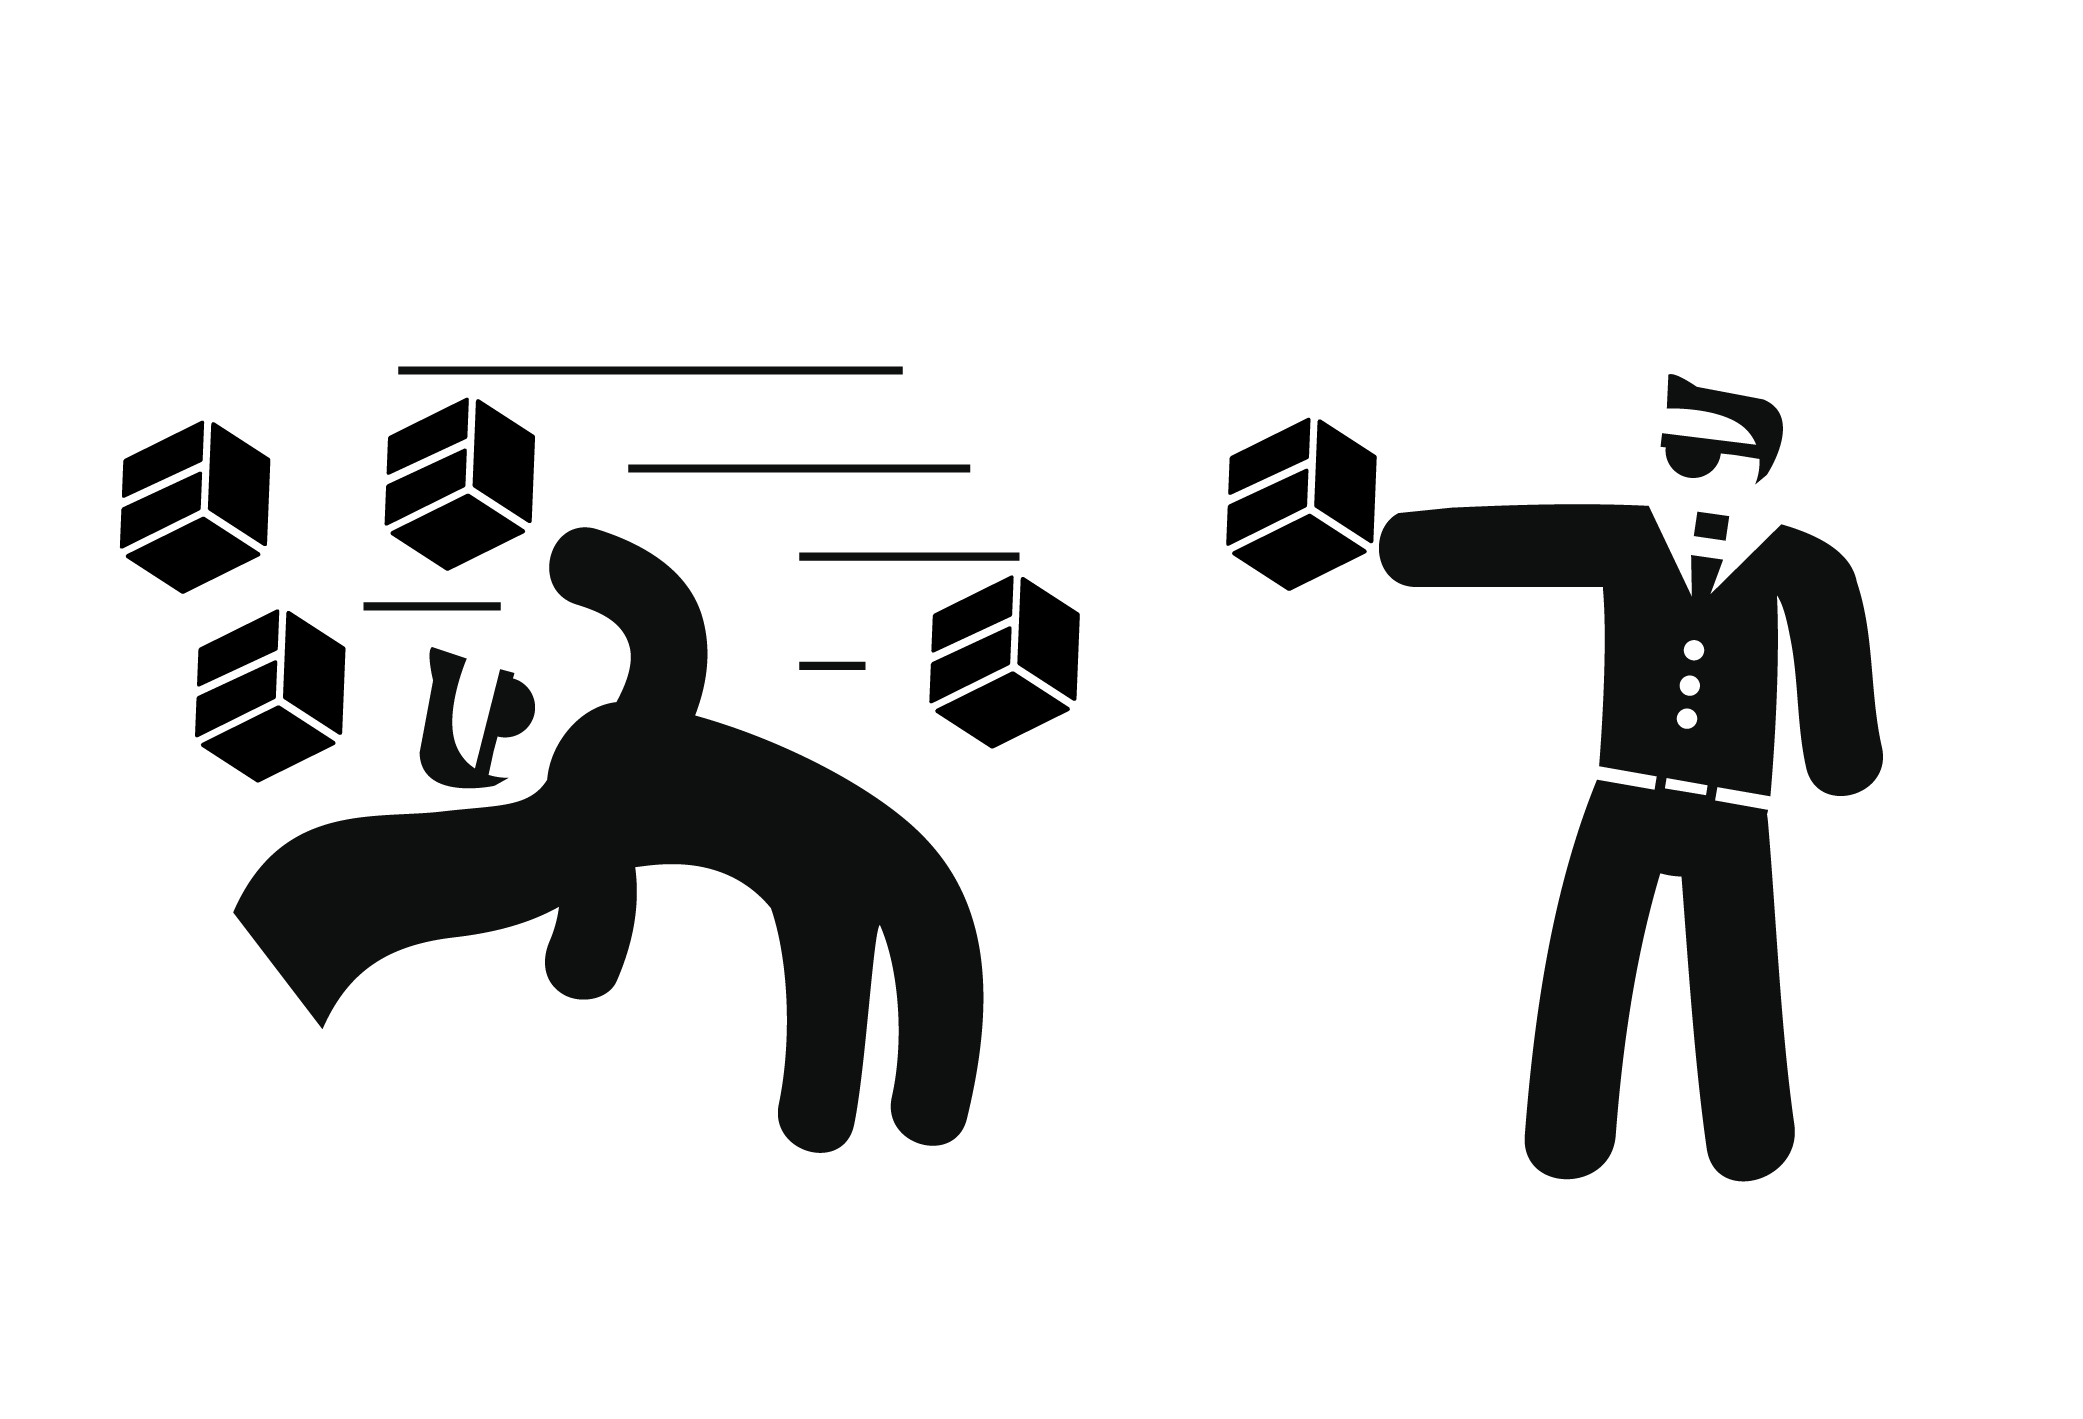 agent-box-throwing-vector-01.png